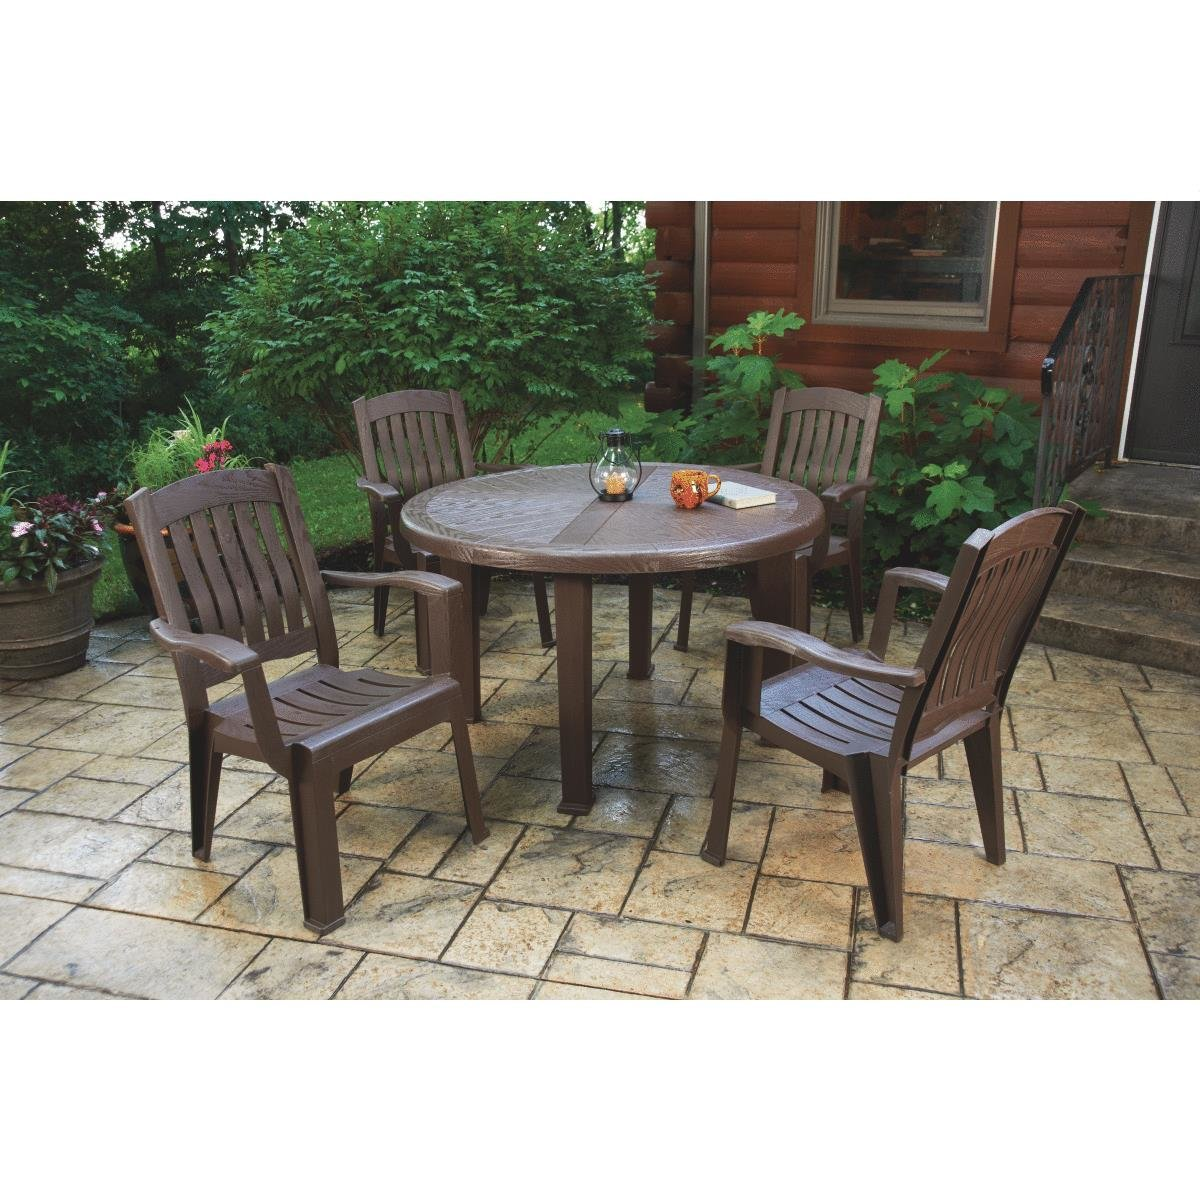 adams brentwood round table denny lumber super zoom middletown accent patio better homes coffee plastic outdoor storage retro modern furniture serving extra wide console pub with